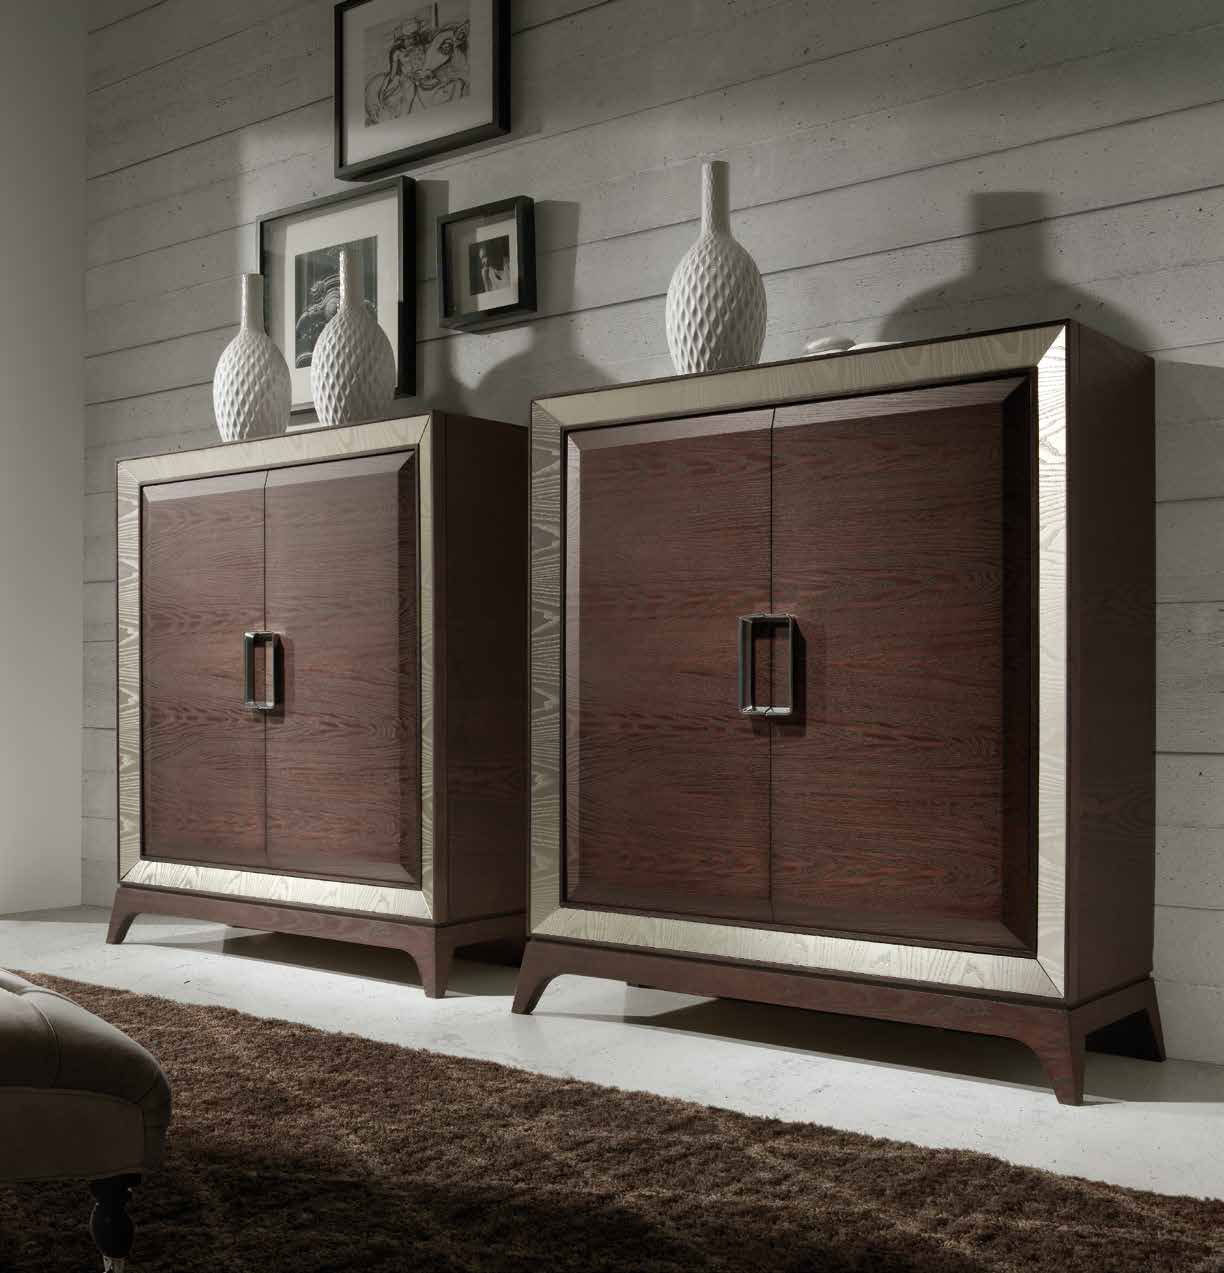 touch-salon-touch-08-mueble-auxiliar